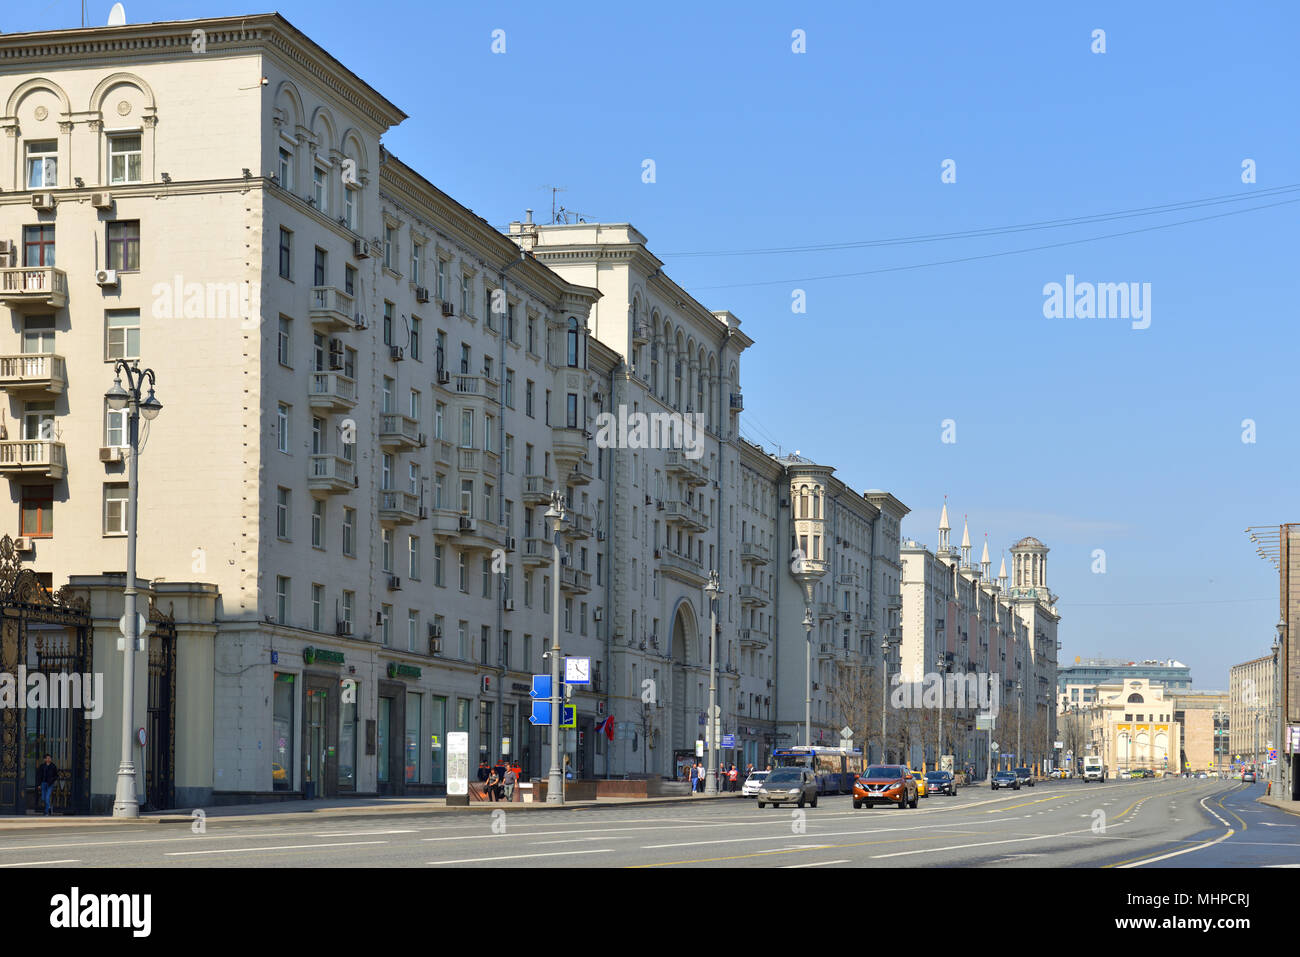 MOSCOW, RUSSIA - APRIL 30, 2018:  Tverskaya Street, known between 1935 and 1990 as Gorky Street, main radial street in Moscow - Stock Image